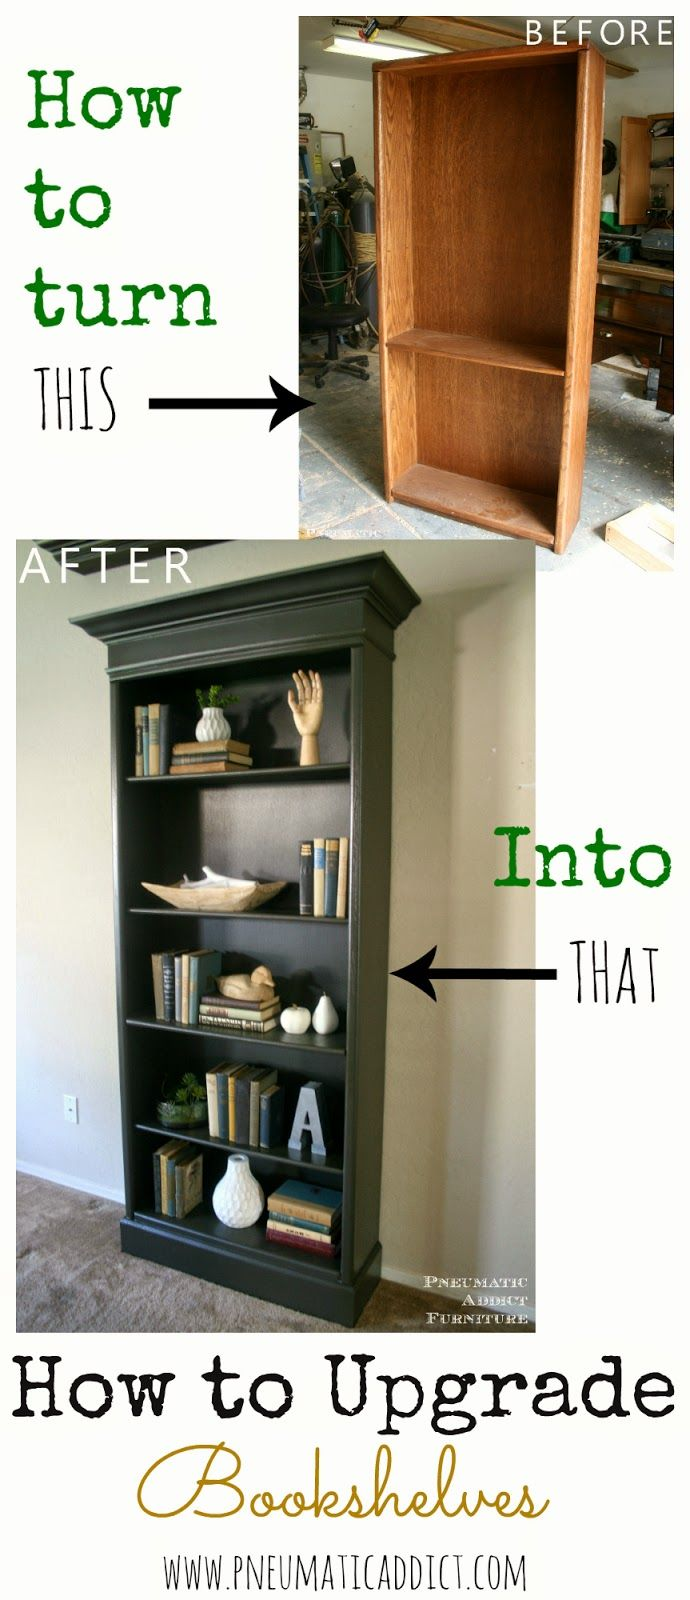 How To Upgrade Bookshelves | Maybe One Day I'll Try Making